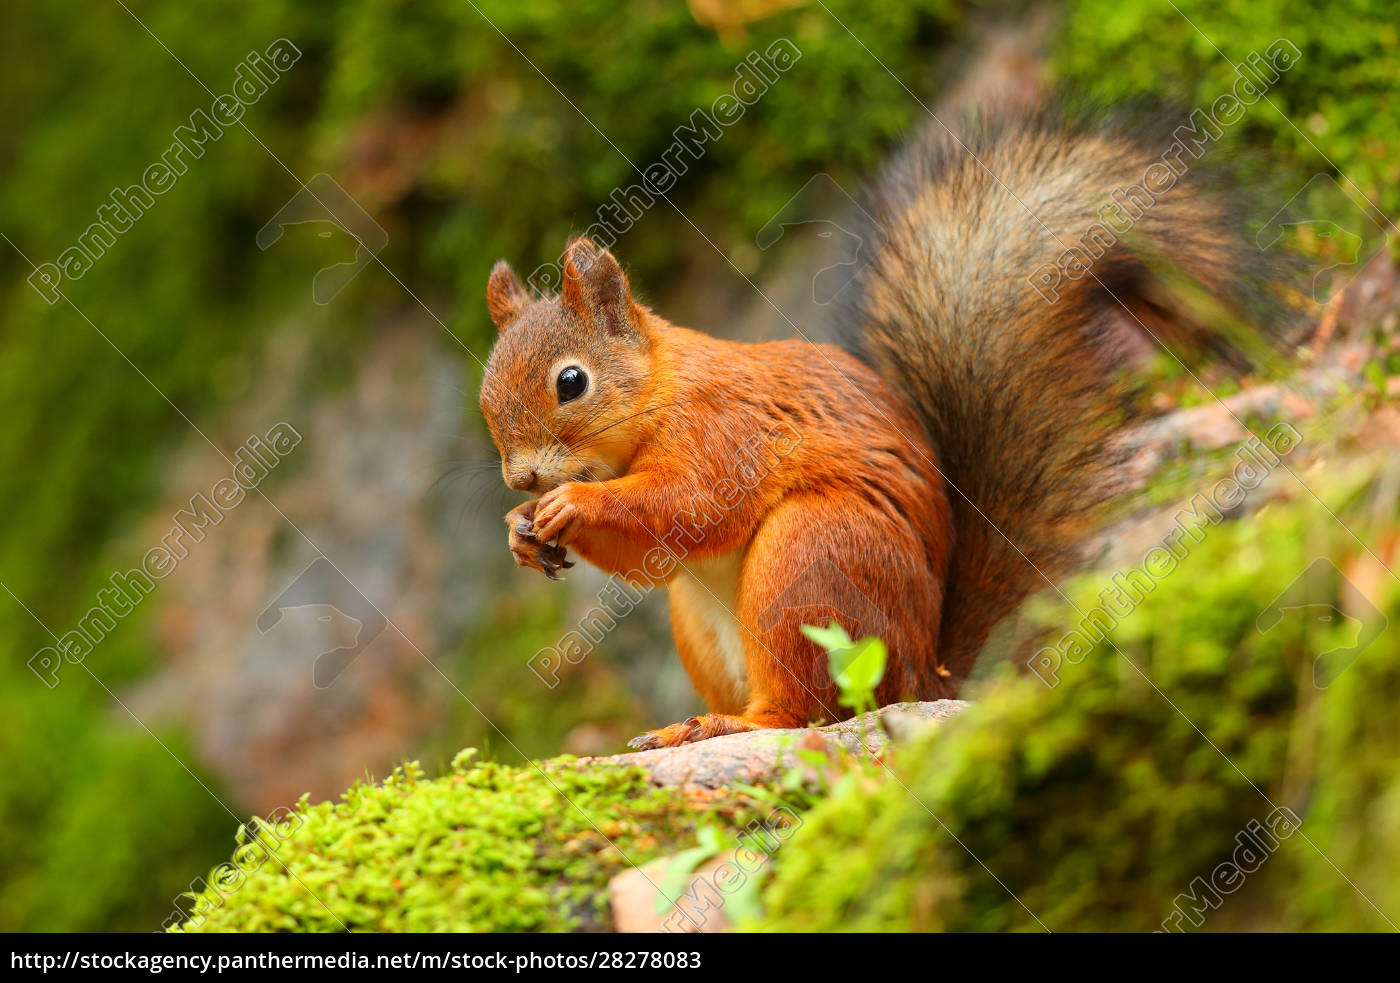 red, squirrel, eating, with, green, background - 28278083